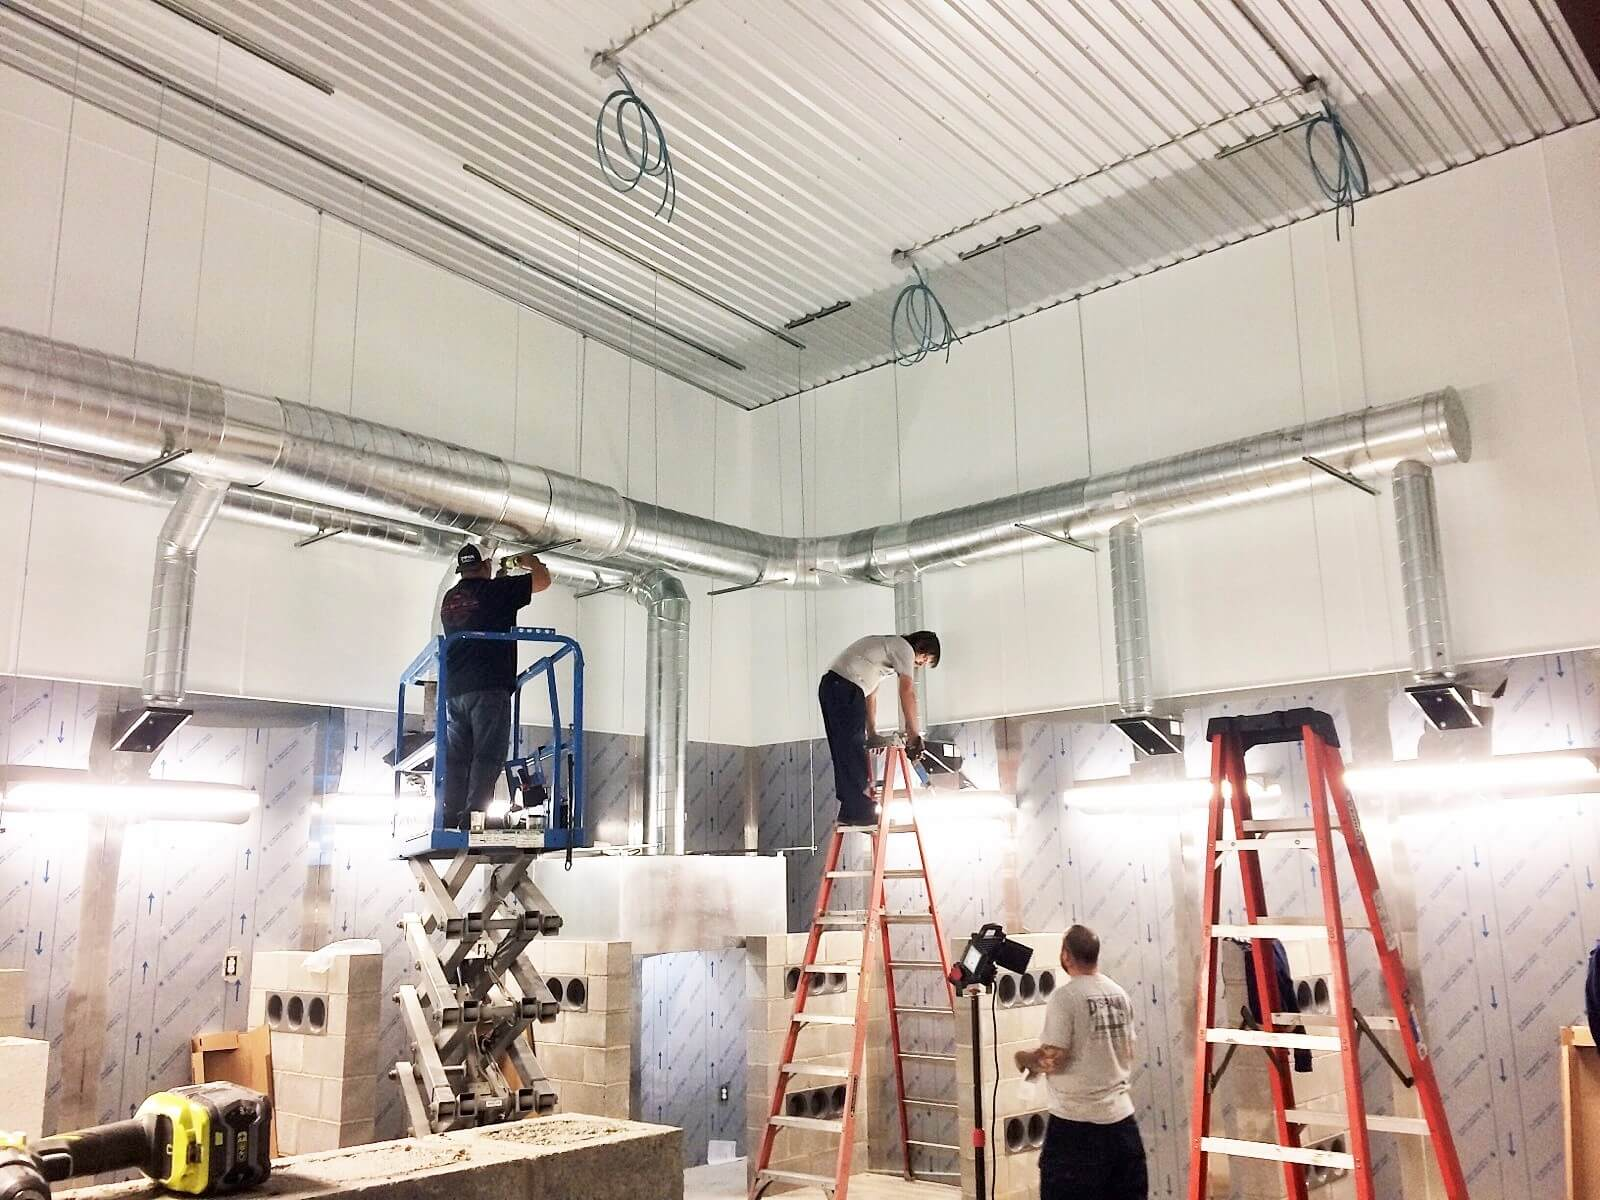 Boerne Tx Commercial Hvac Electrical Service Dspain Sales Wiring Whether You Run A Small Retail Store In Need Of New System Or Your Hotel Needs To Have Its Replaced Conform With Building